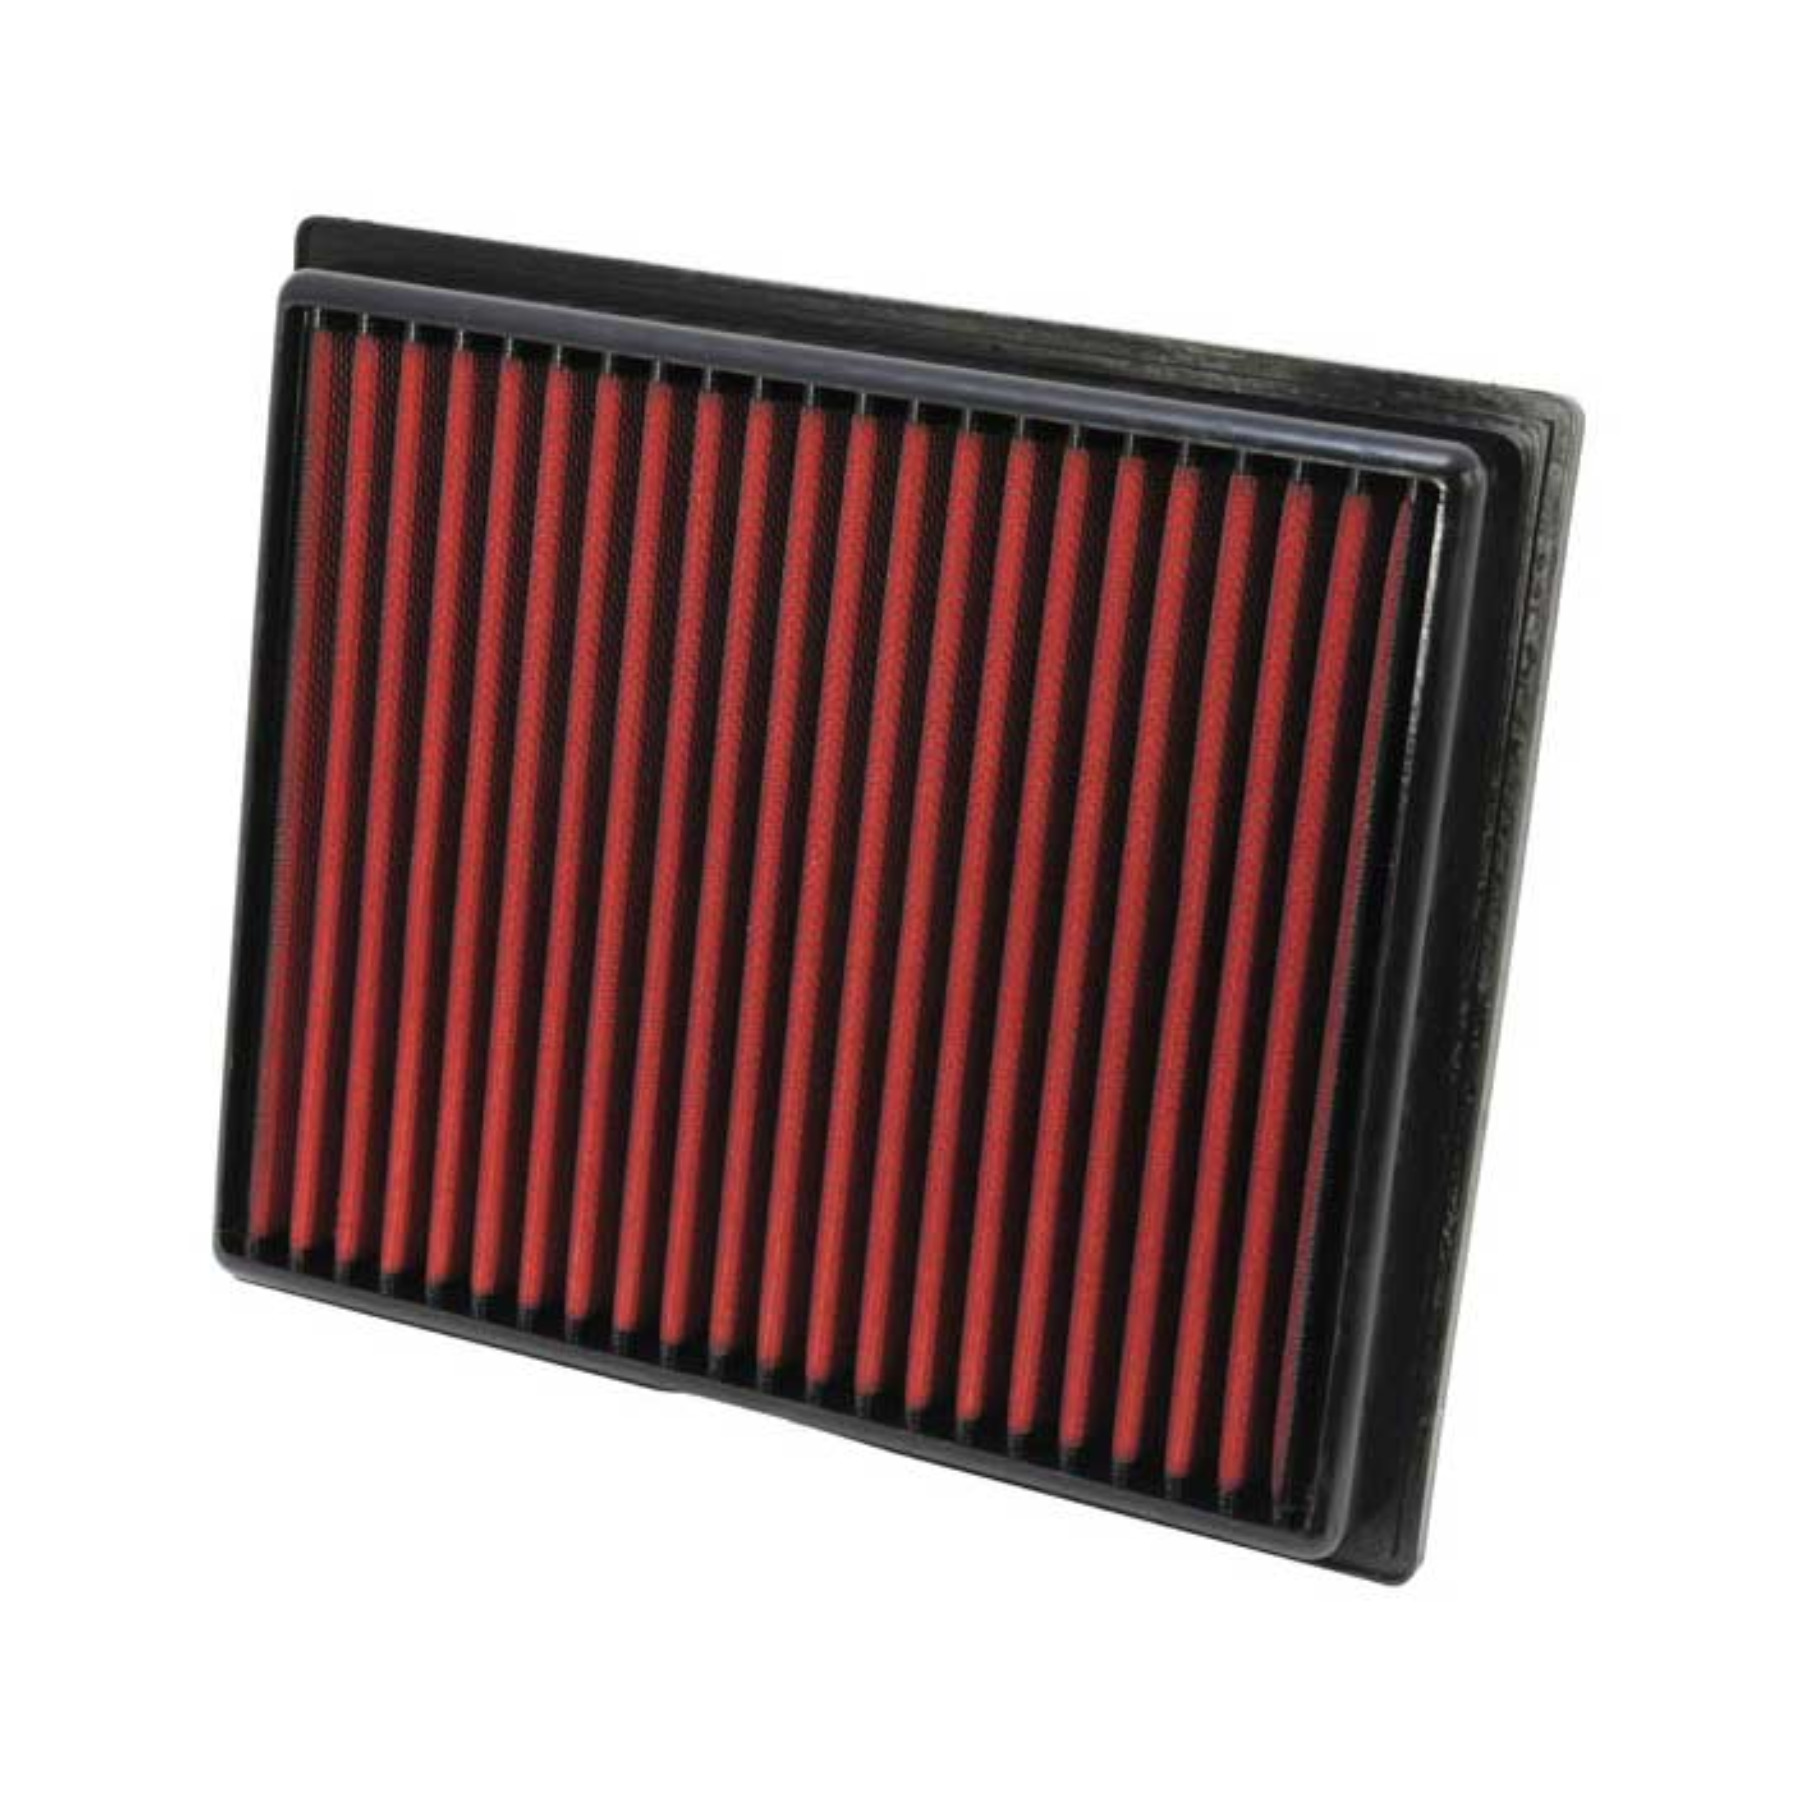 Aem Red Dryflow Panel Air Filter For Nissan/Infiniti Frontier/Pathfinder/Qx56/Titan/Xterra 4.0l/5.6l 2004-2016 28-20286